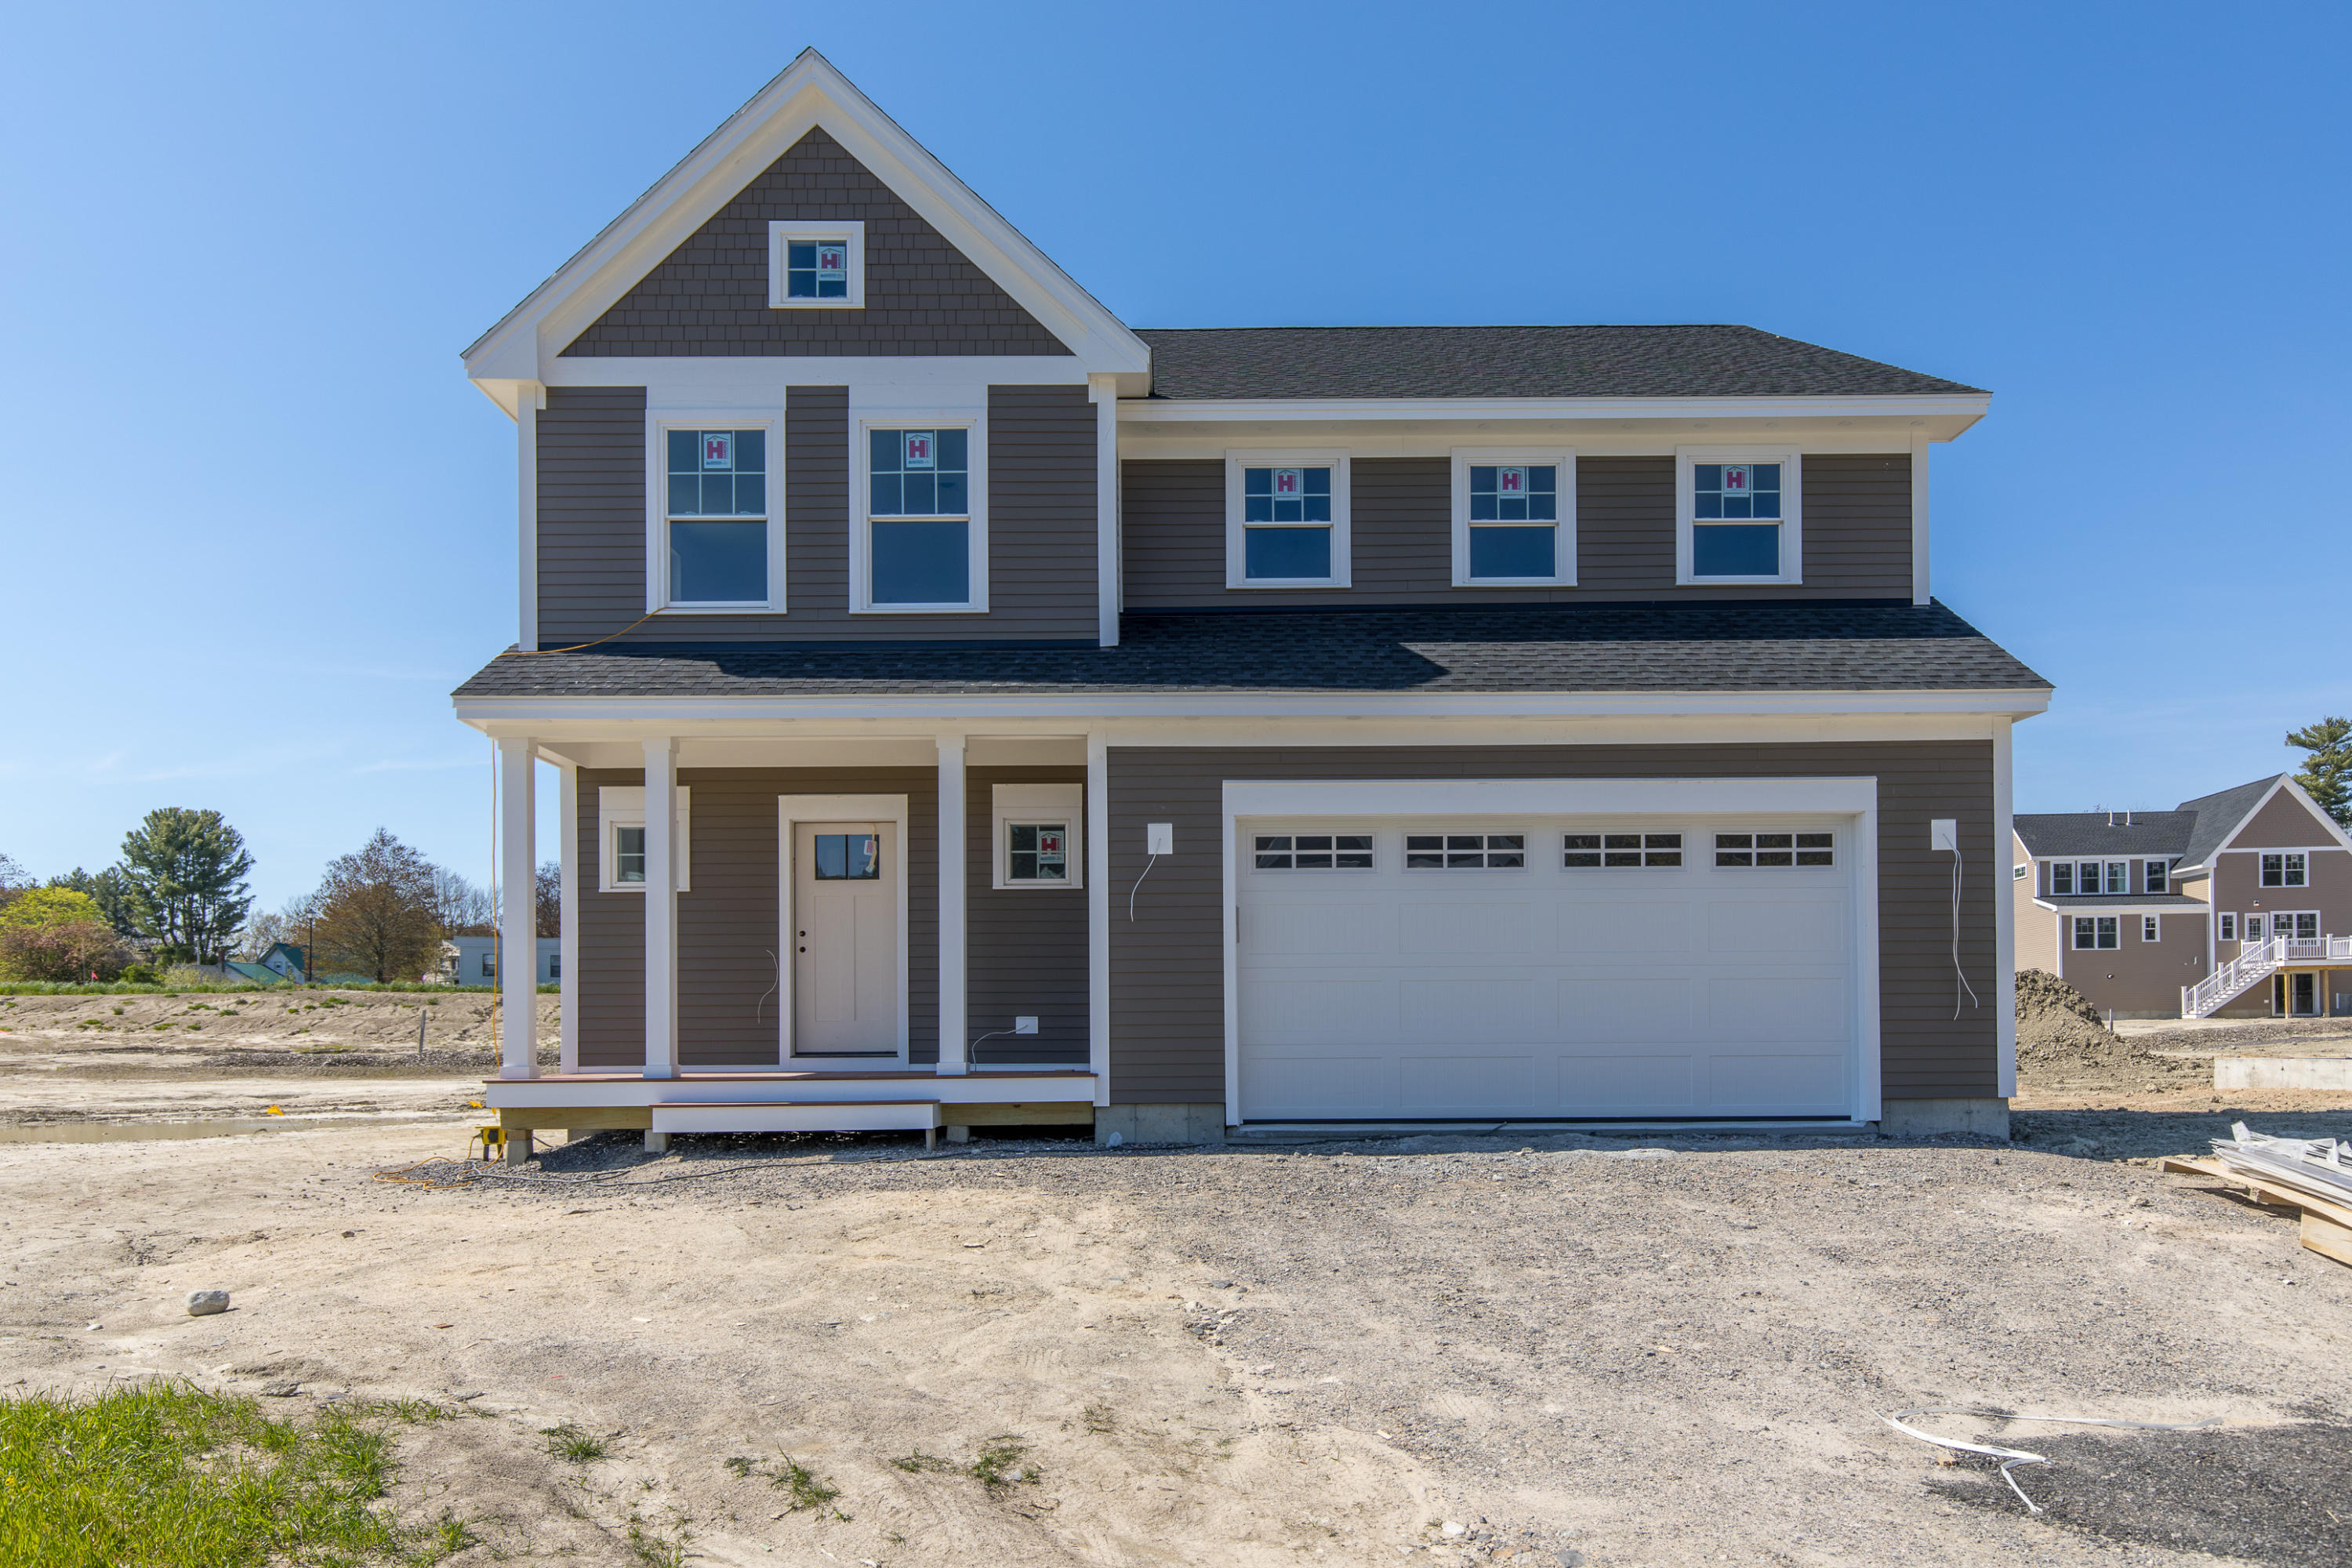 Main image for MLS listing 1466894